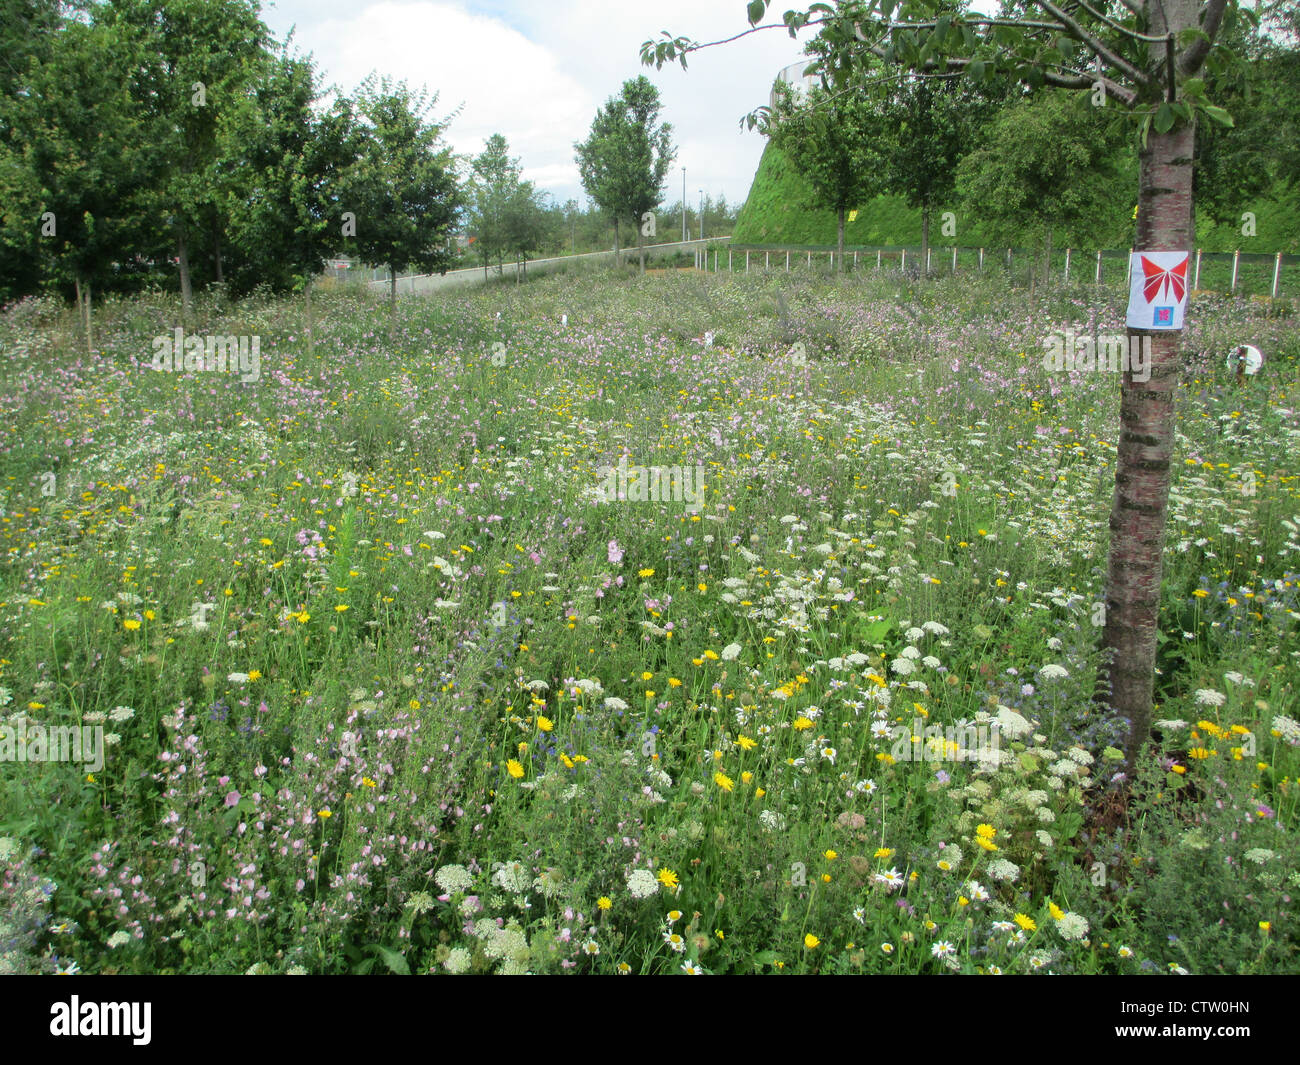 WILD FLOWERS at Olympic Park, Streatham, London in July 2012. Photo Tony Gale - Stock Image